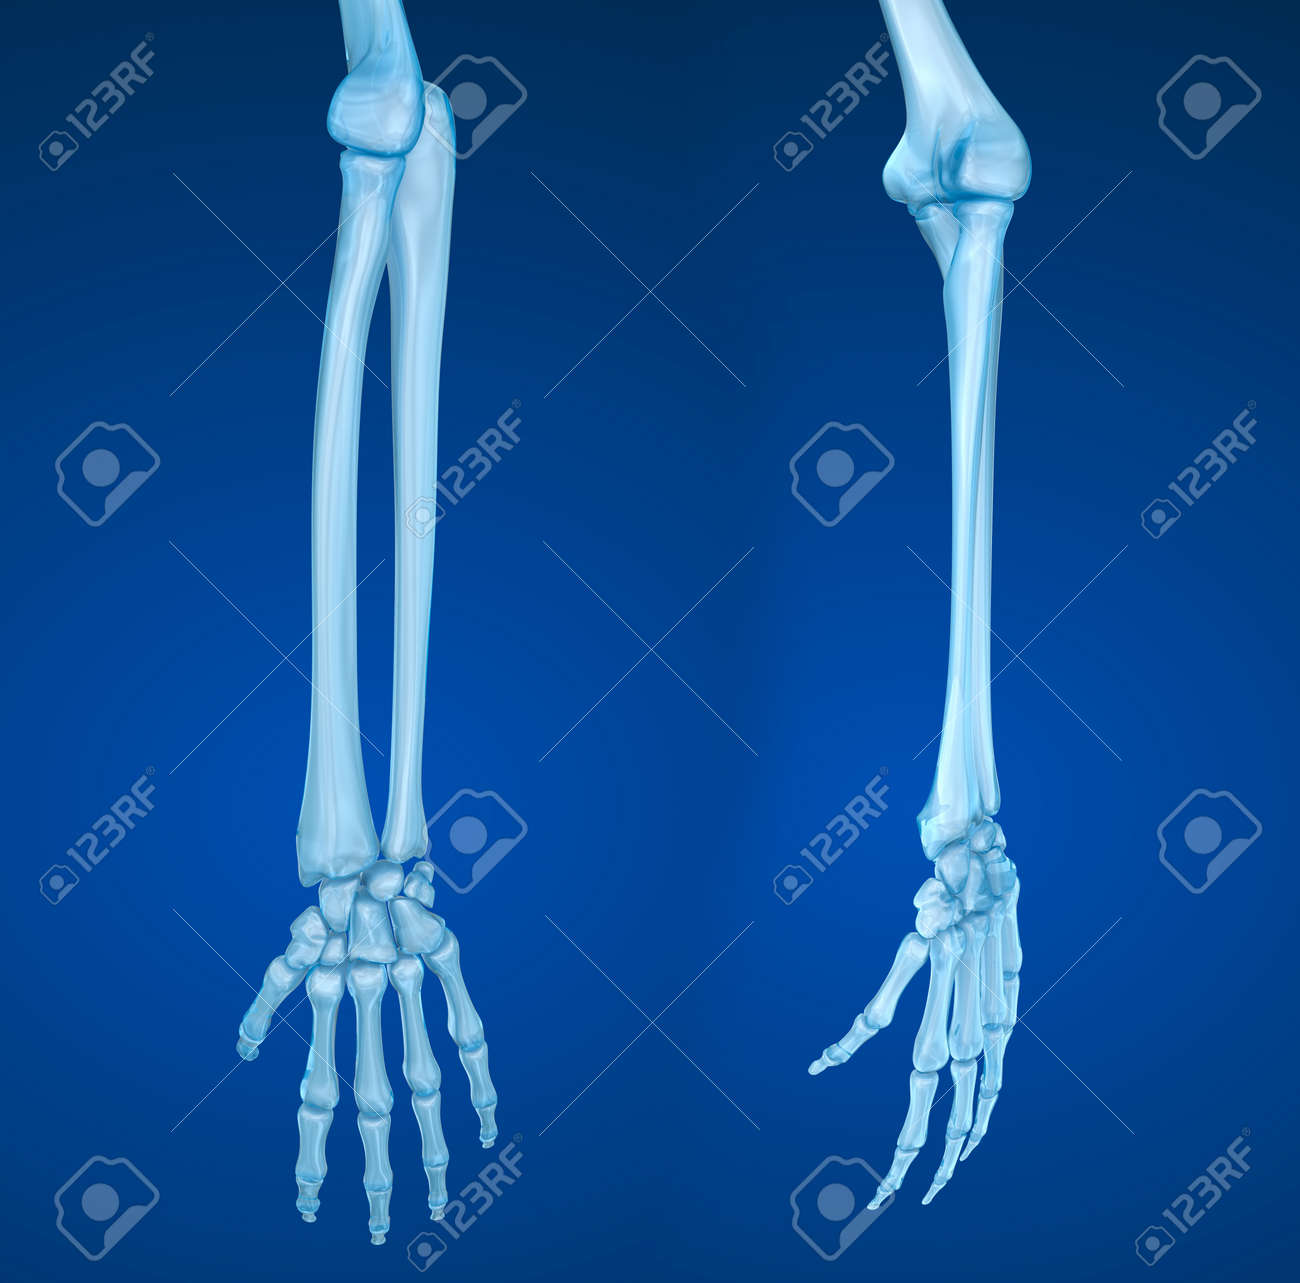 Human Hand Anatomy. Medically Accurate 3D Illustration Stock Photo ...